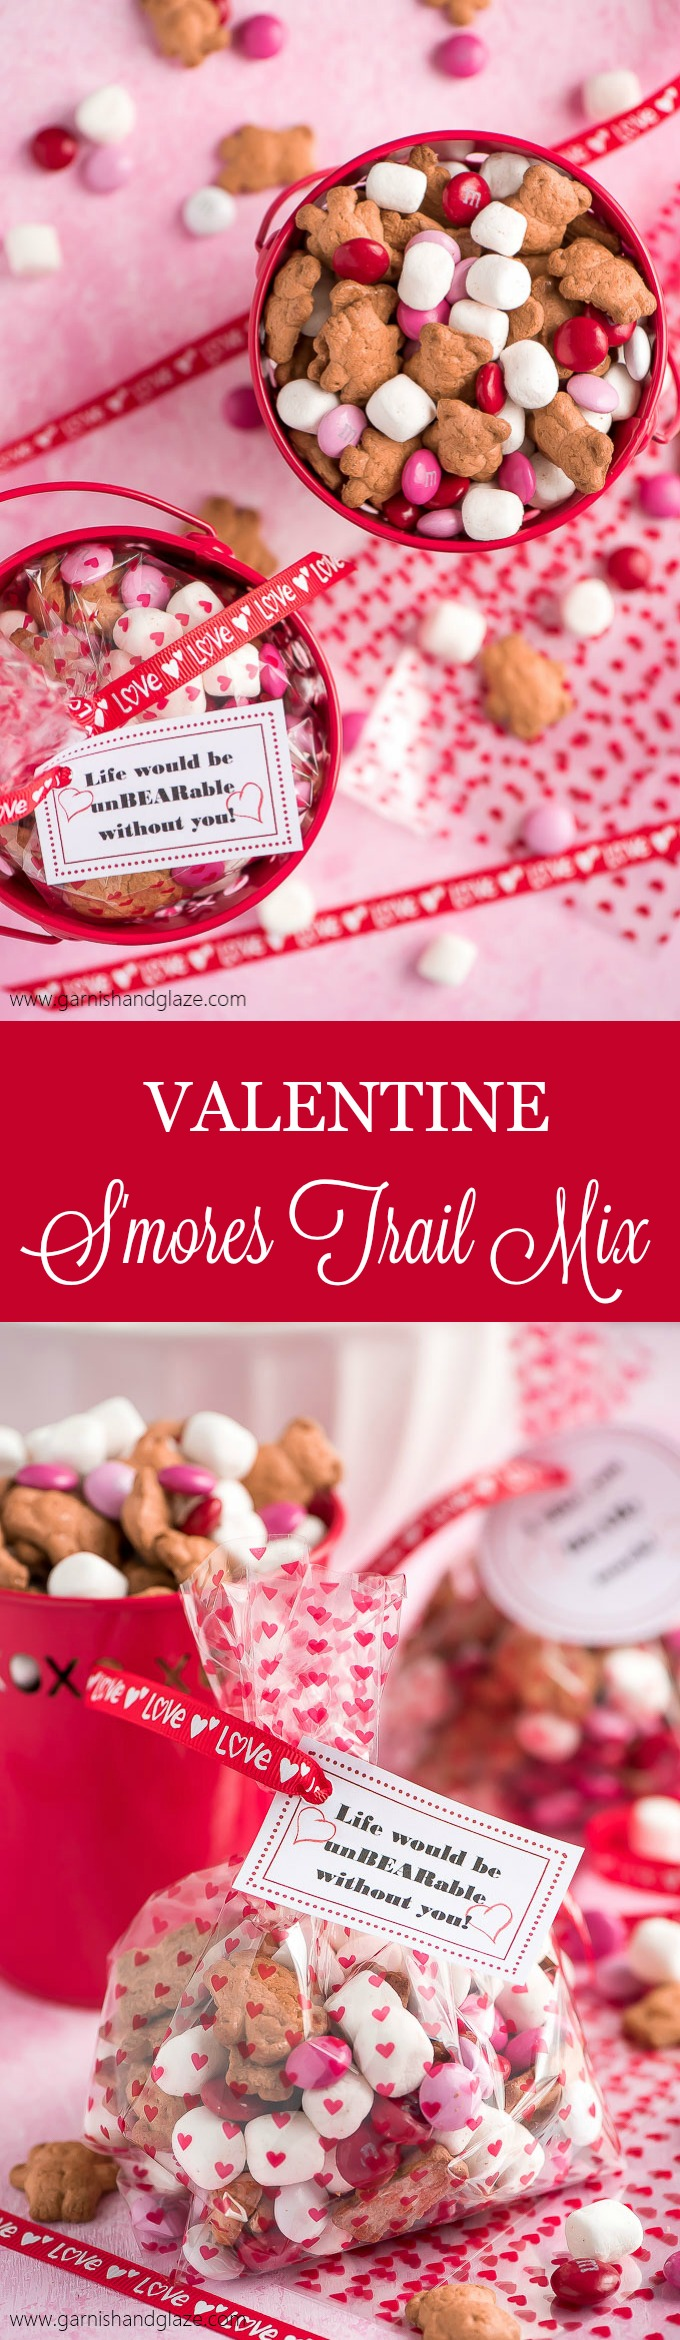 Valentine S'mores Trail Mix is your go-to last minute treat for a party or your child's valentines. Two minutes is all it takes to make this tasty treat!